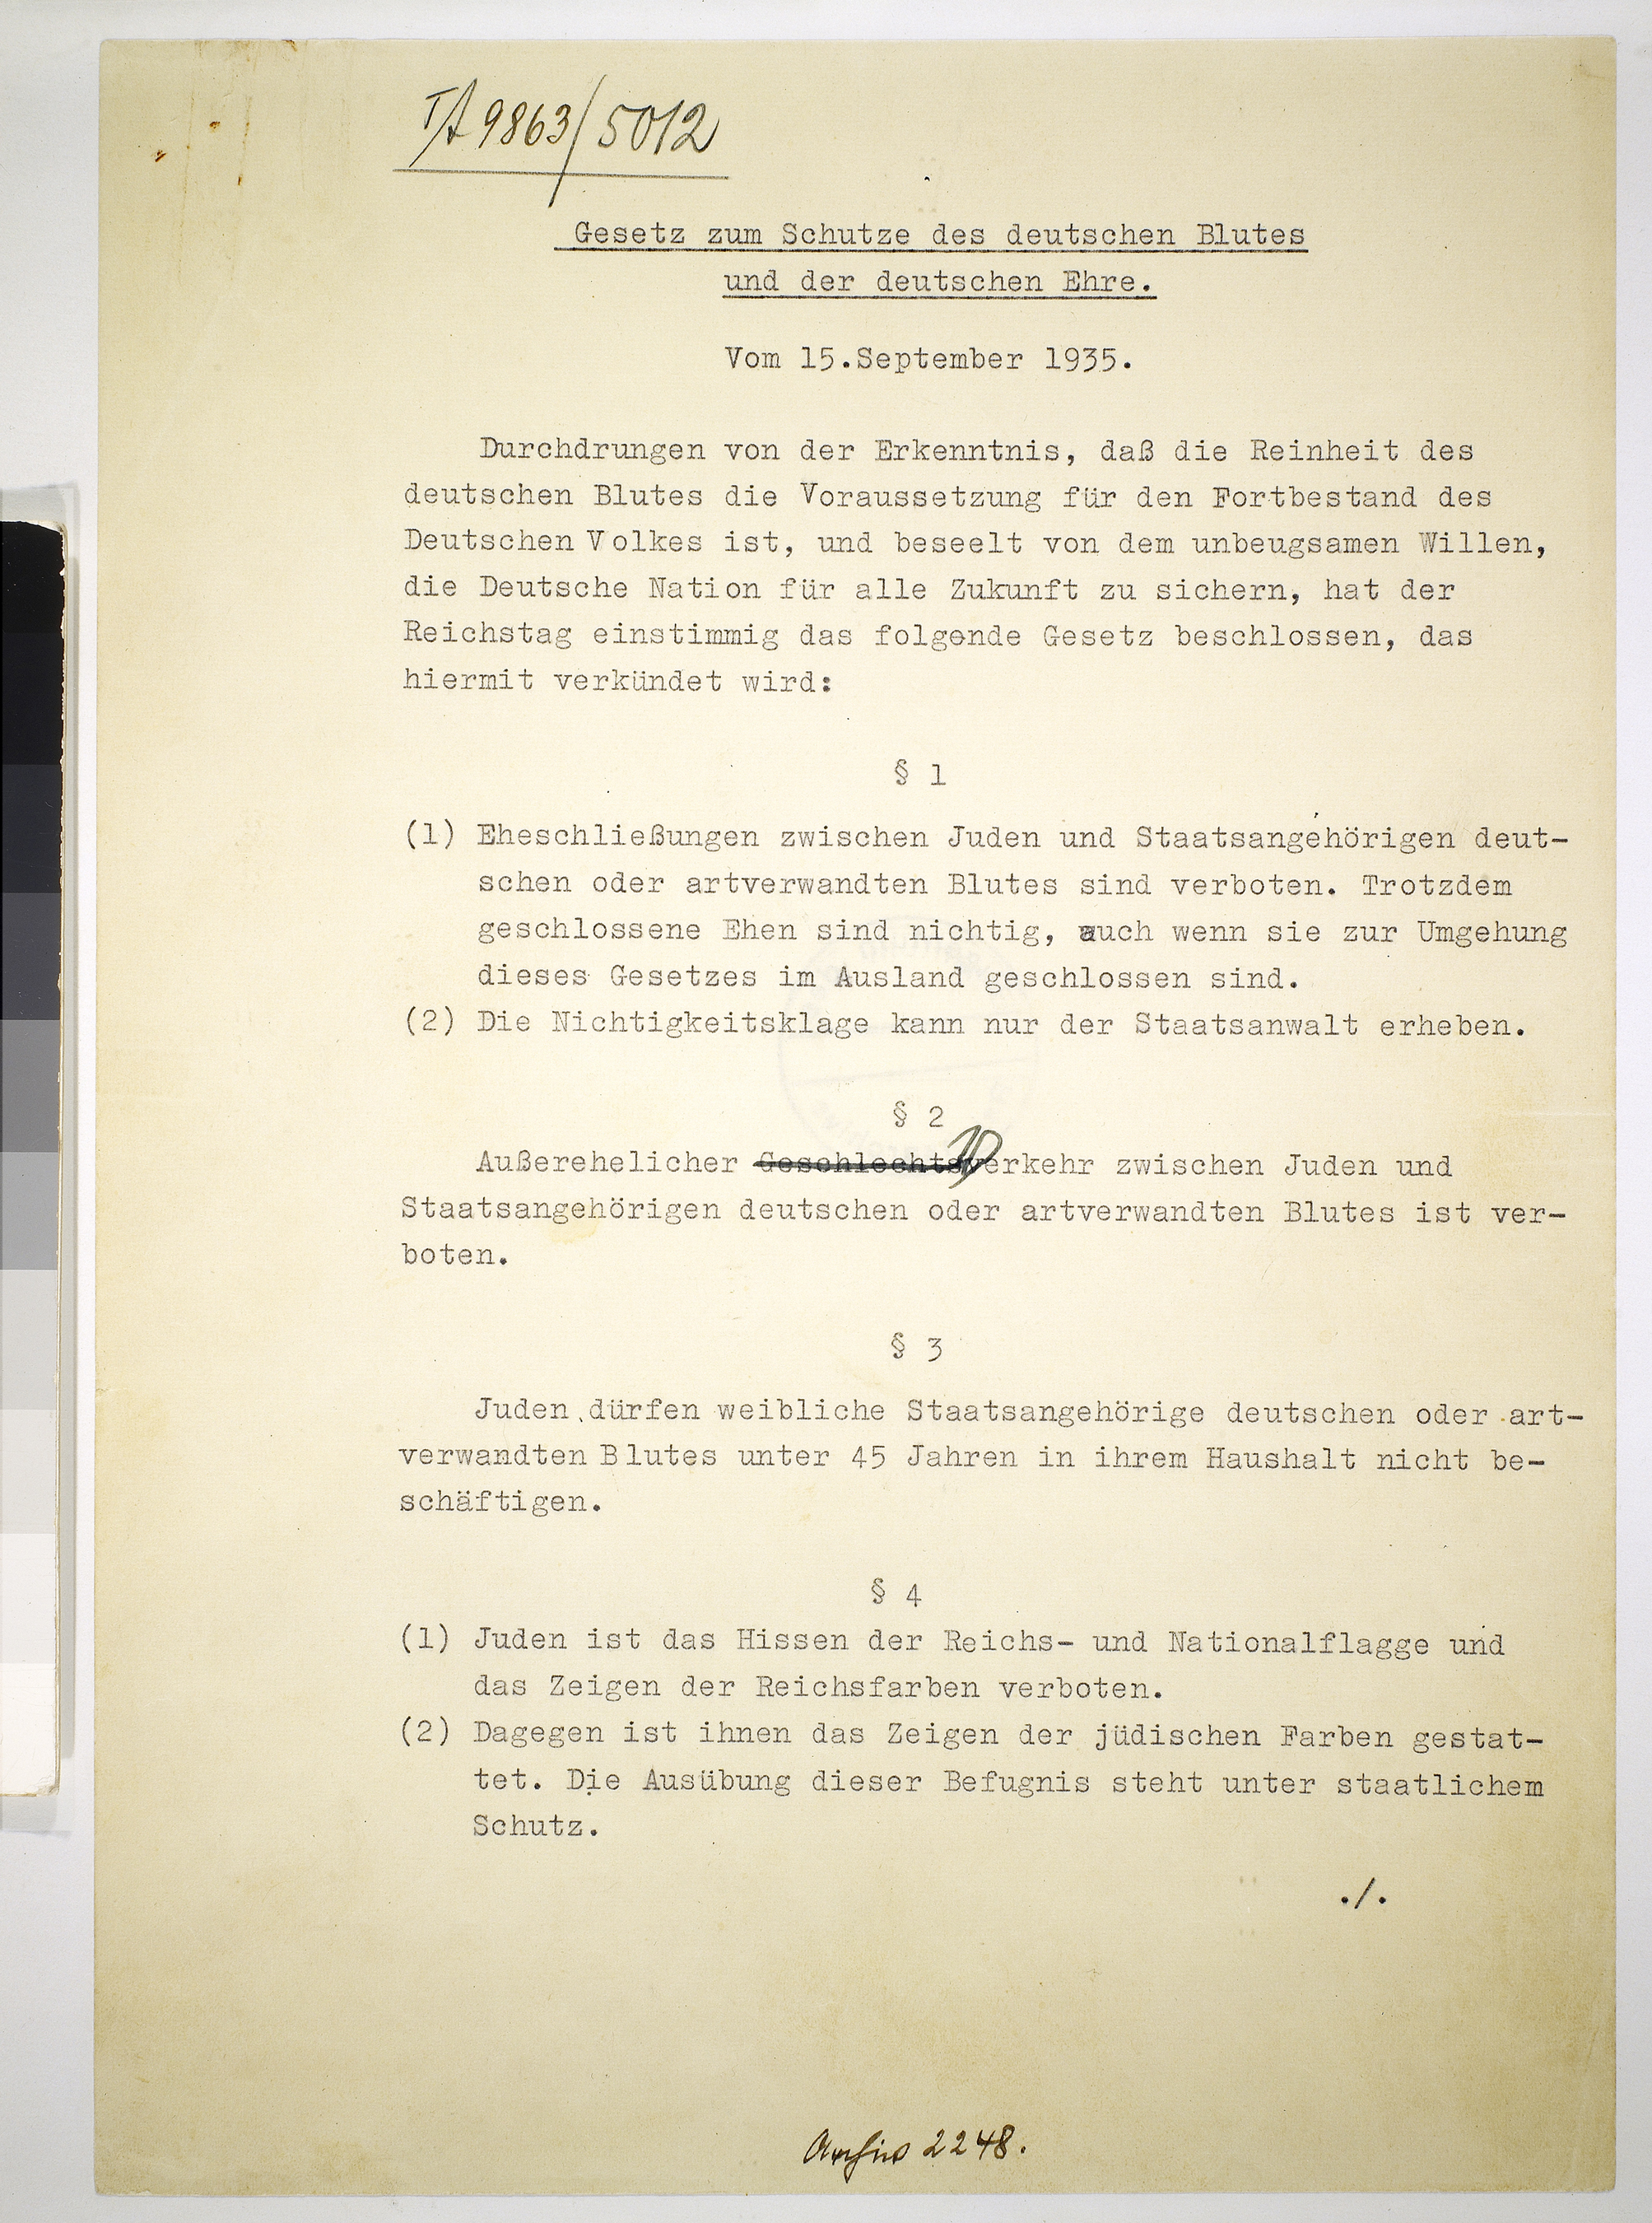 nuremberg laws 2013-11-9  however, these were trials conducted according to the laws of a single nation rather than, as in the case of the nuremberg trials, a group of four powers (france, britain, the soviet union and the us) with different legal traditions and practices.